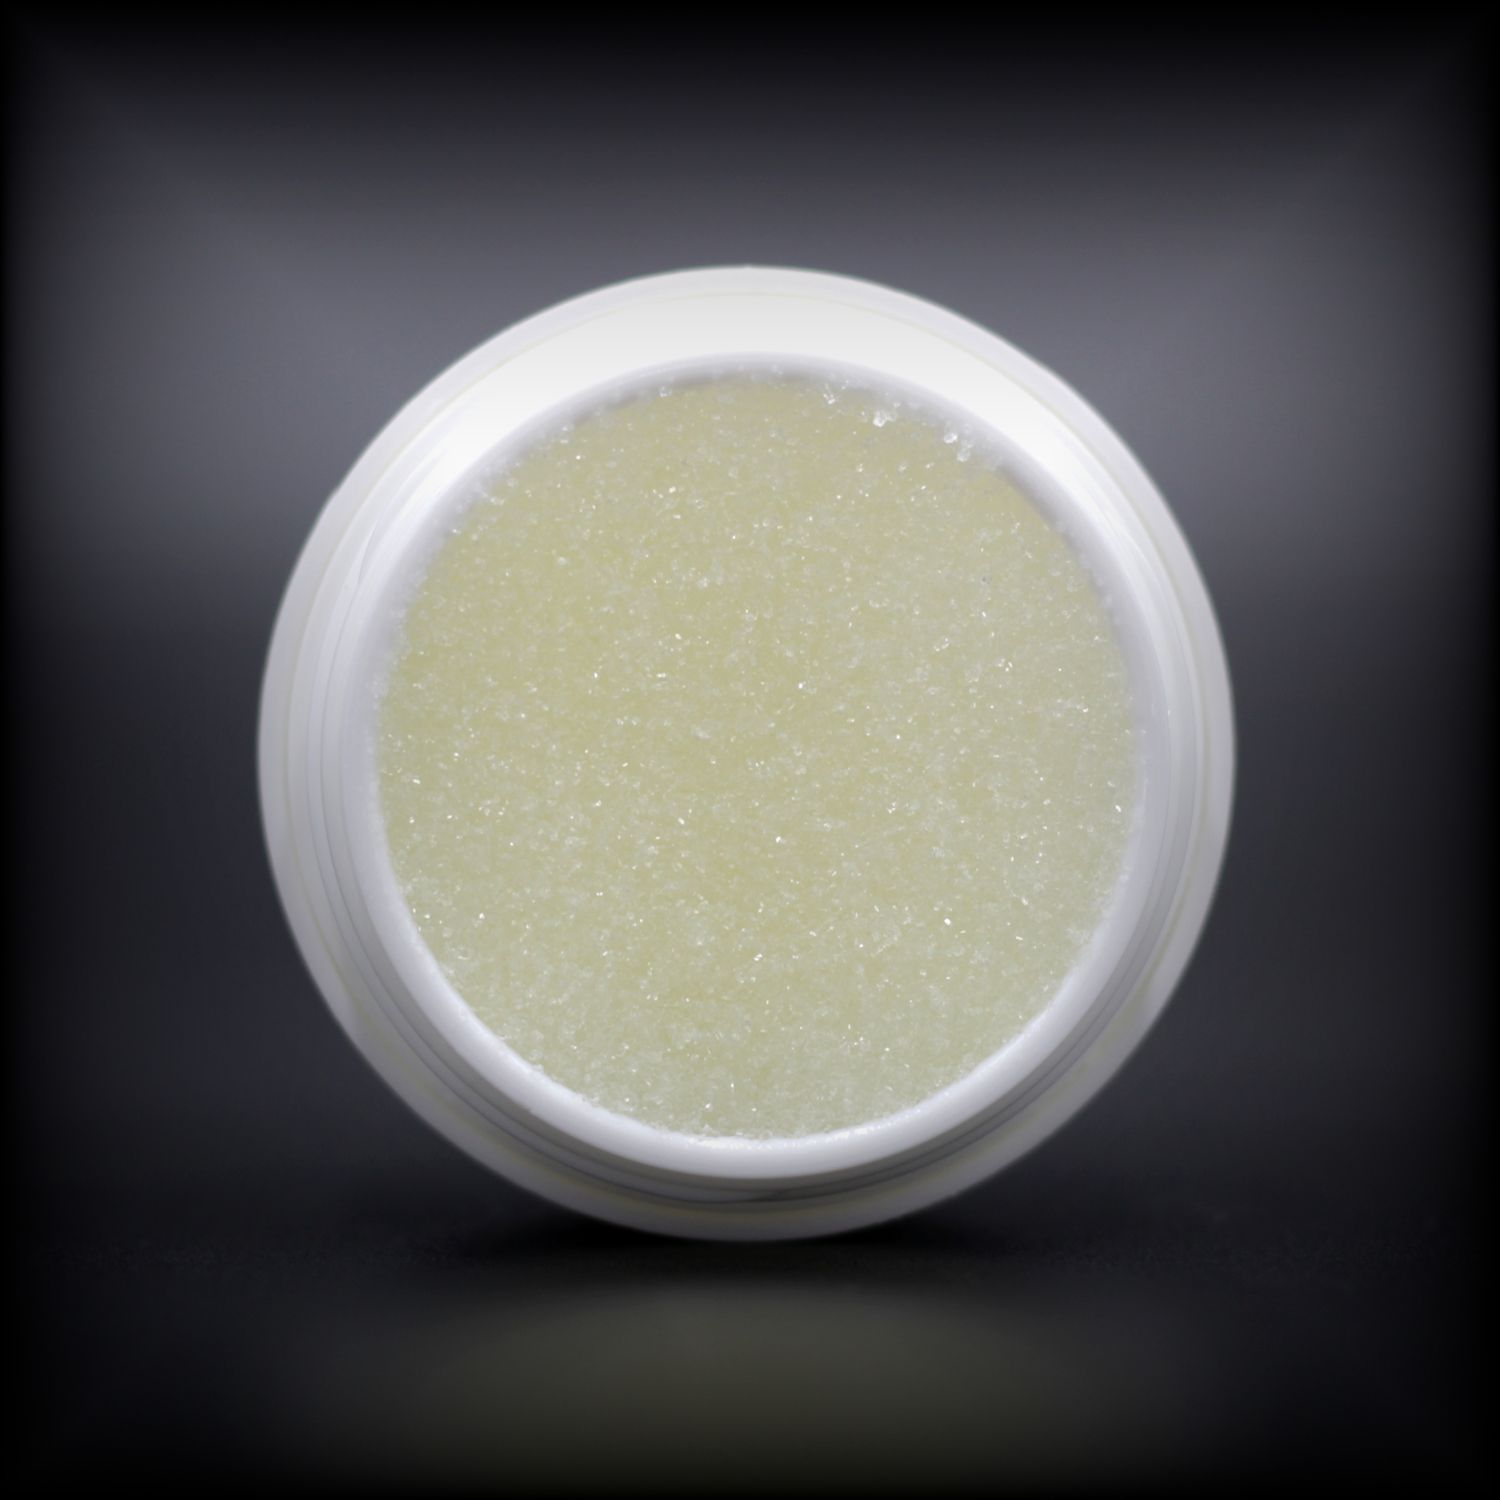 Naturally Wicked Exfoliating Peppermint Lip Scrub Inner Container, Exposing Sugar Within Hydrating Lip Scrub